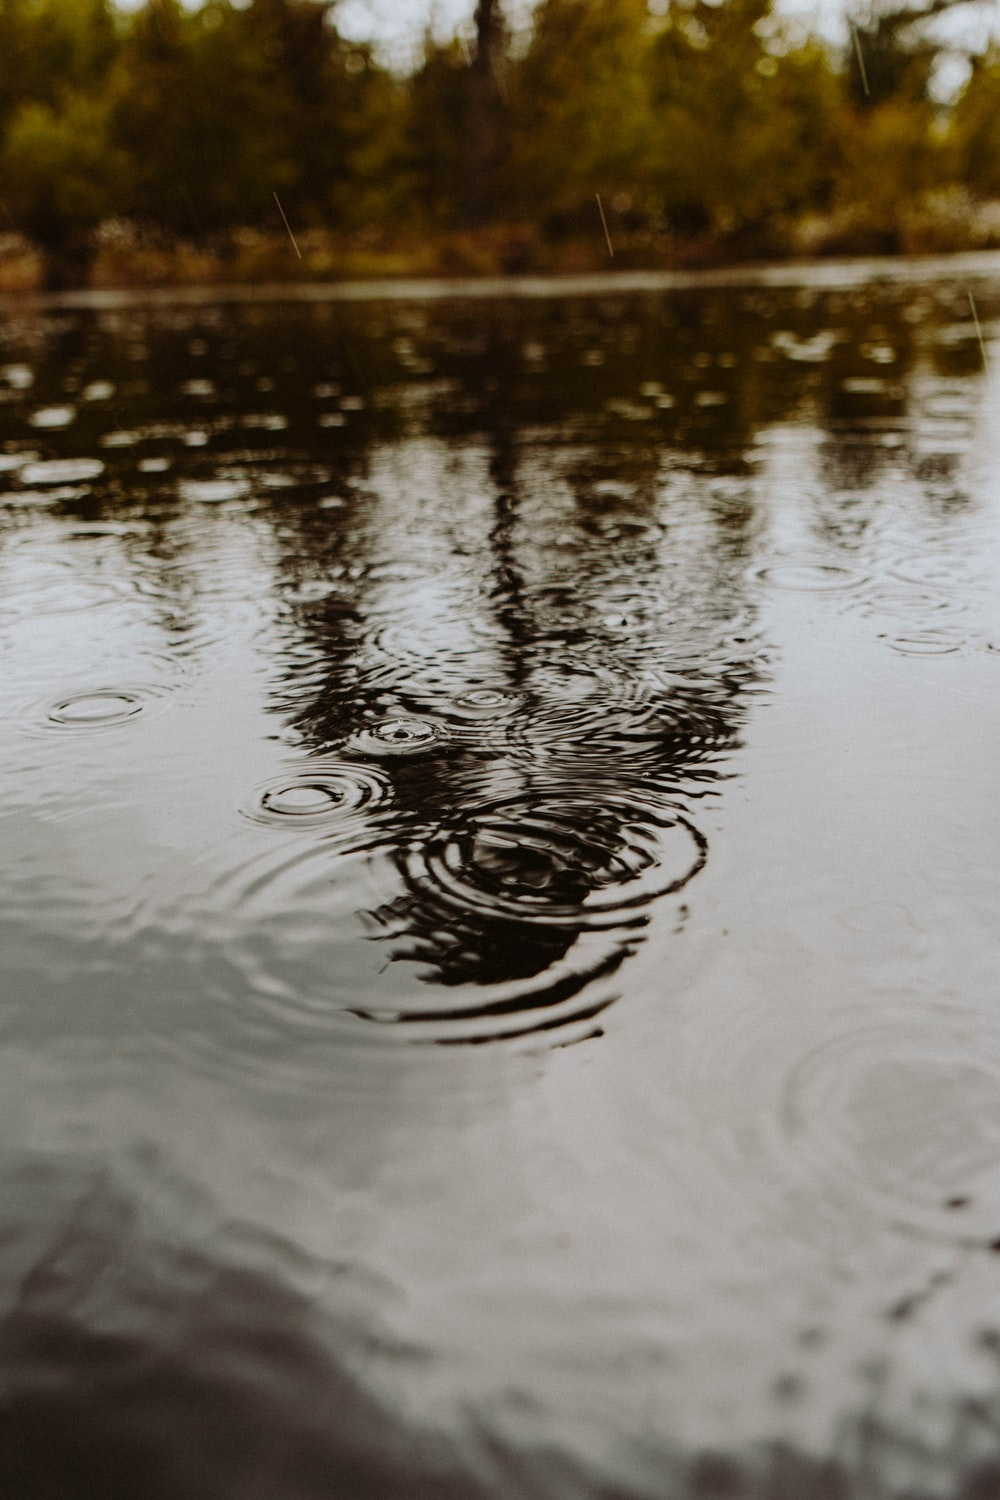 water droplets on body of water